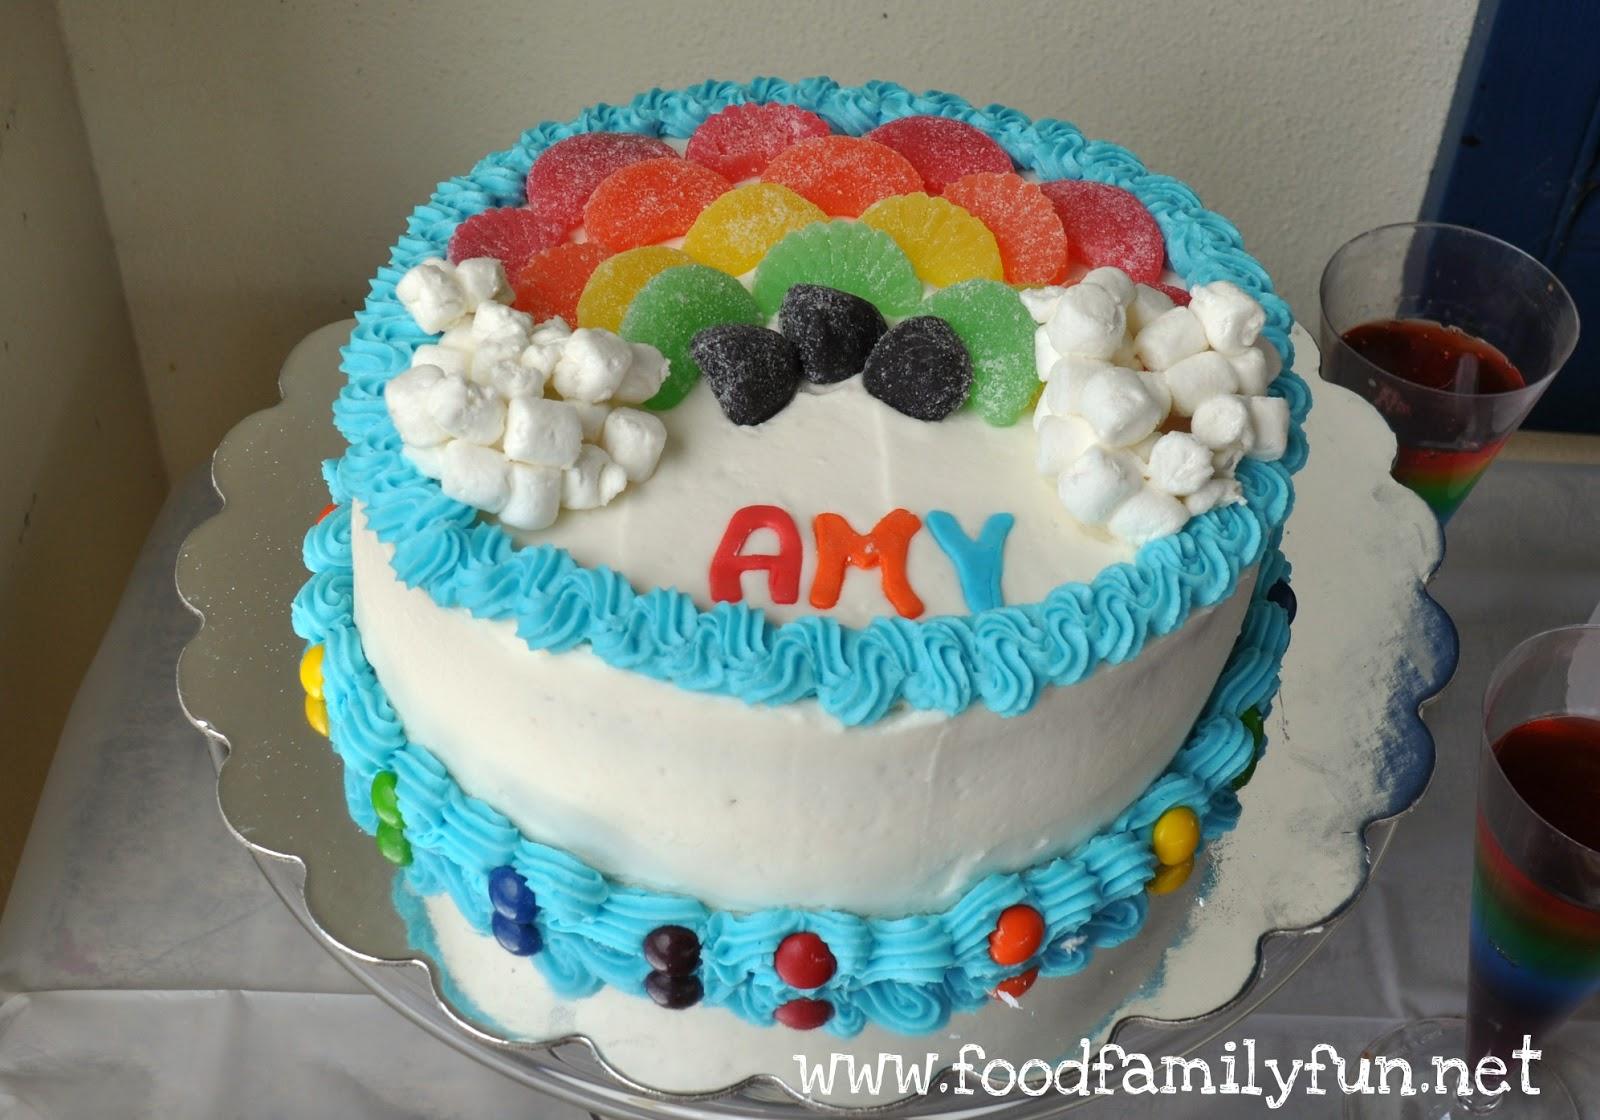 Cake Art By Amy Hours : Food, Family, Fun.: Rainbow Art Party